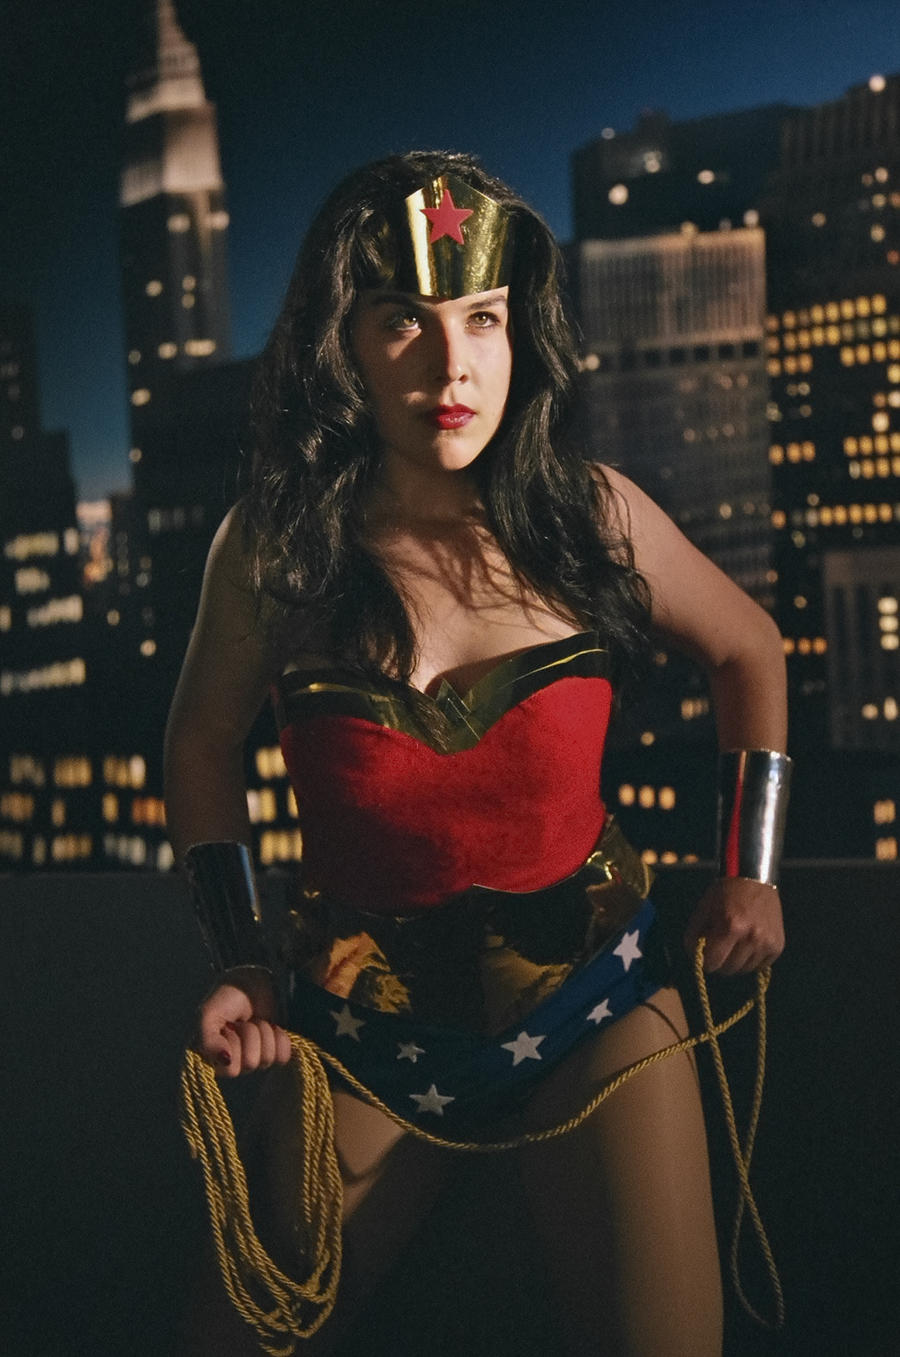 Wonder Woman's City by miss-kitty-j